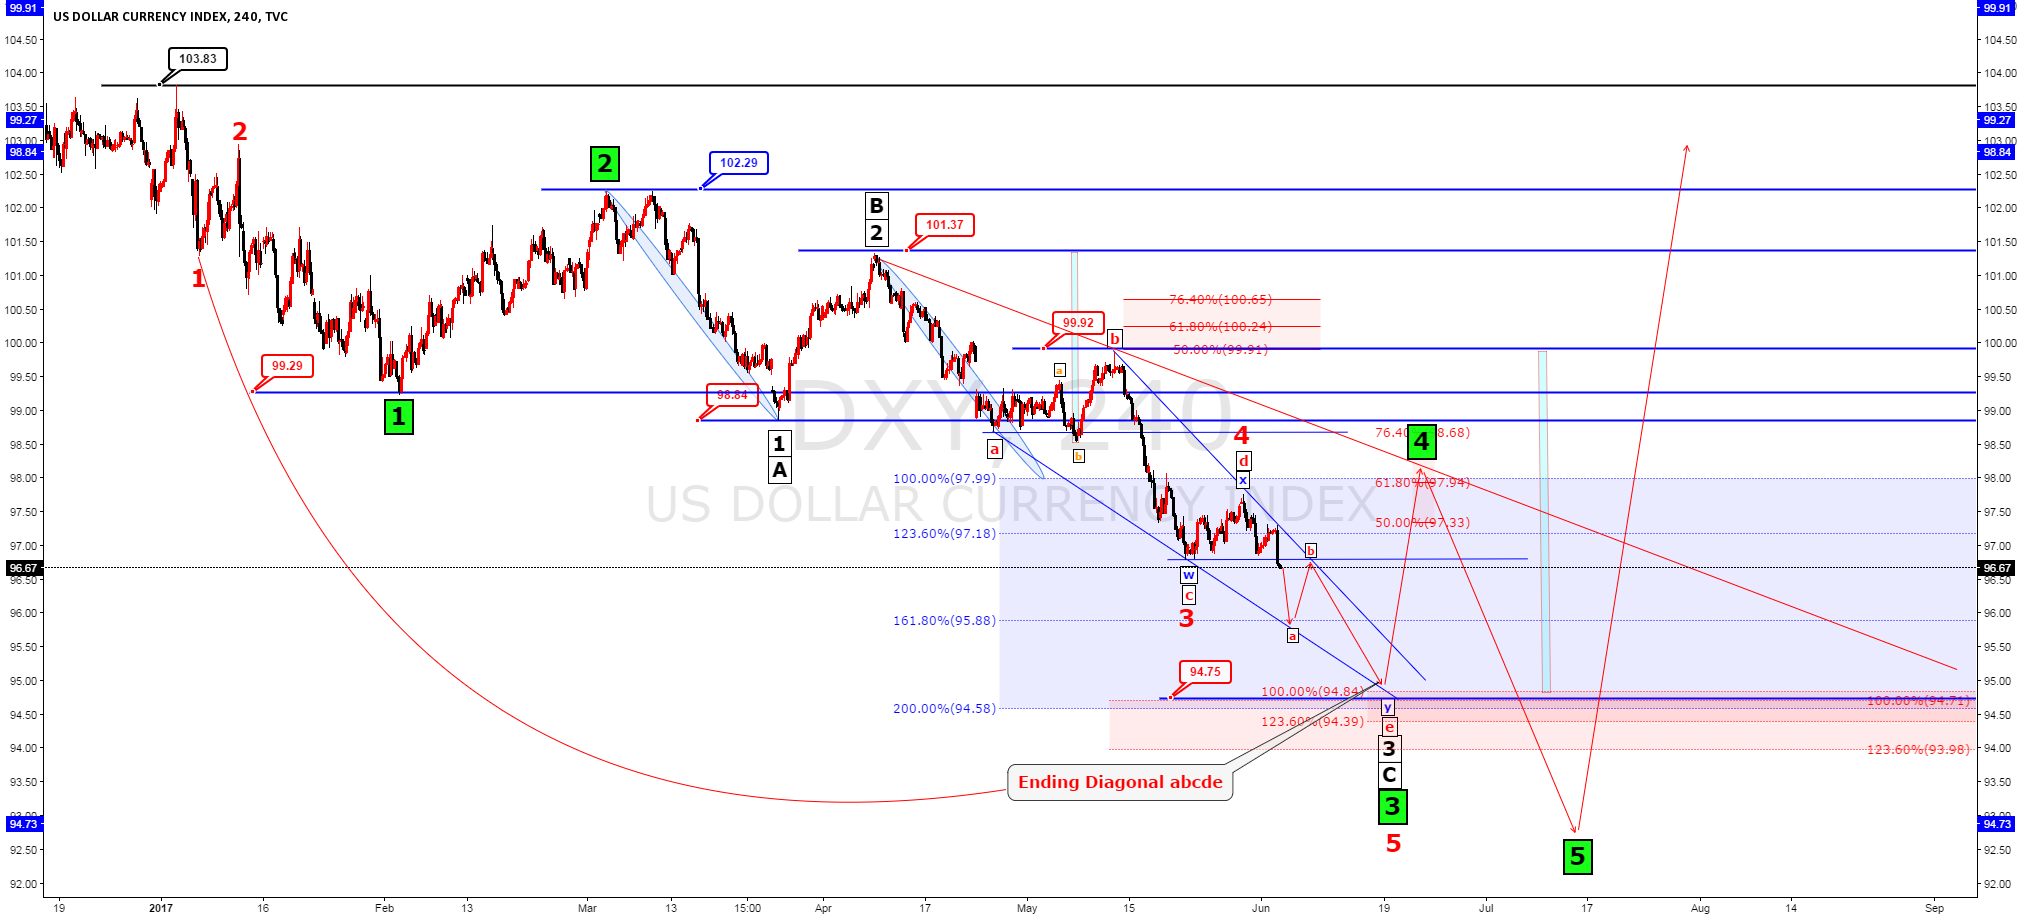 DXY Elliot wave analysis